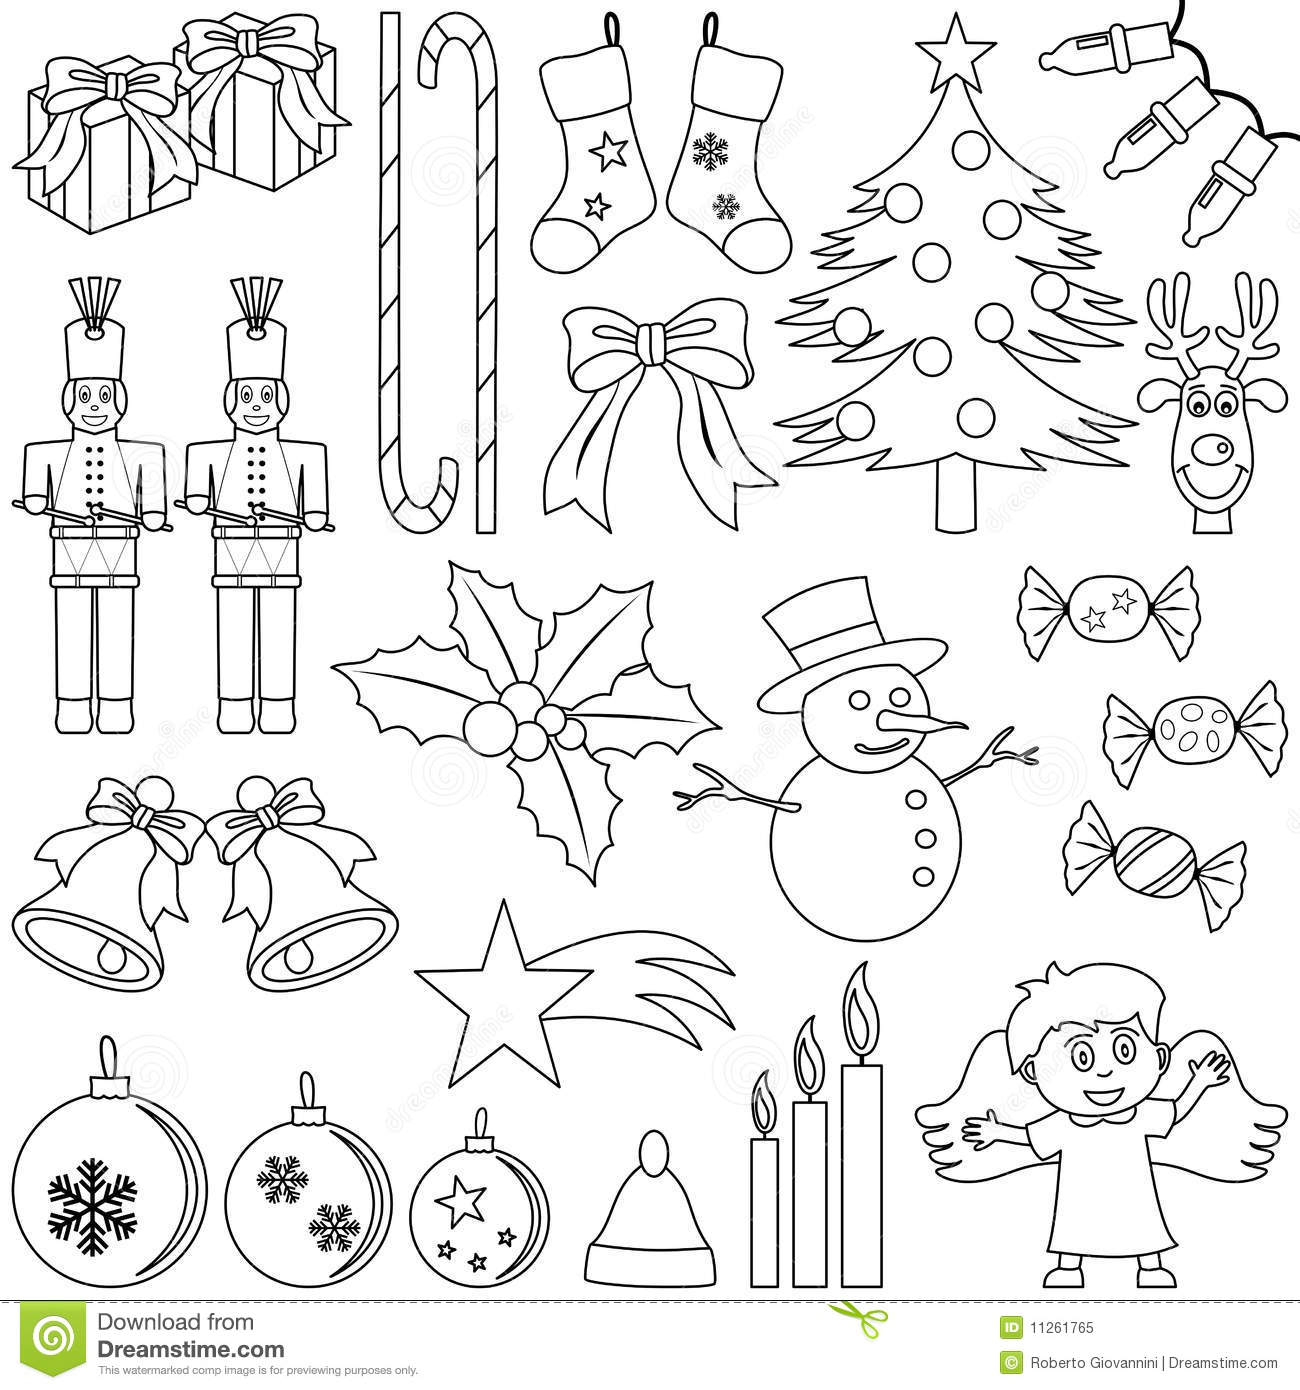 Coloring christmas elements royalty free stock photo for Disegni di natale facili per bambini